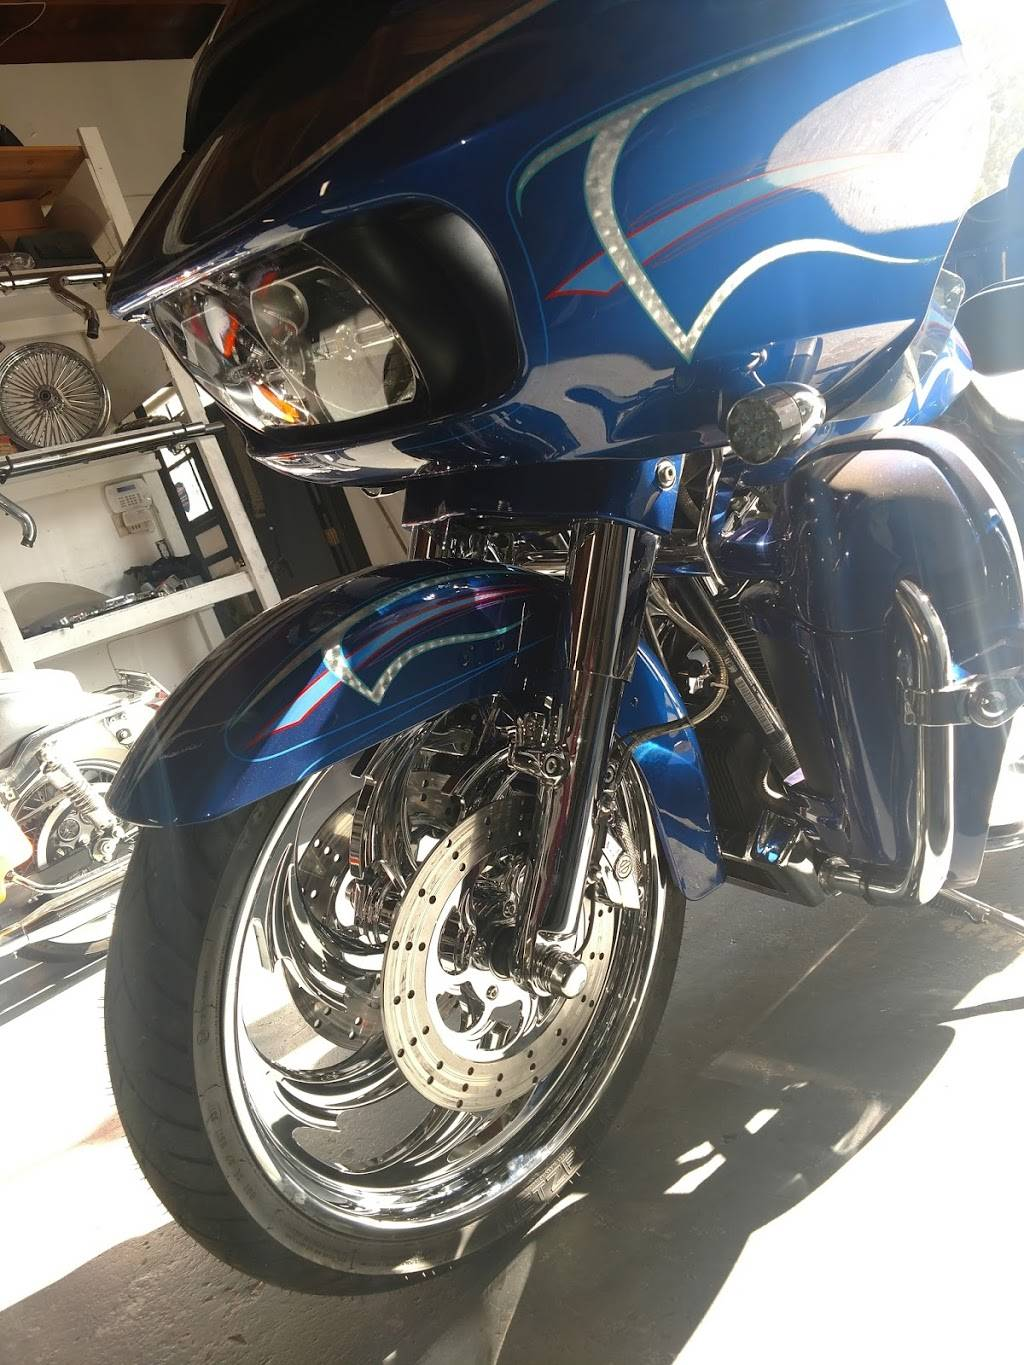 Motorcycle Towing & 24 Hr Services - car repair  | Photo 6 of 7 | Address: 837 E Princeton Ave, Fresno, CA 93704, USA | Phone: (559) 916-7071